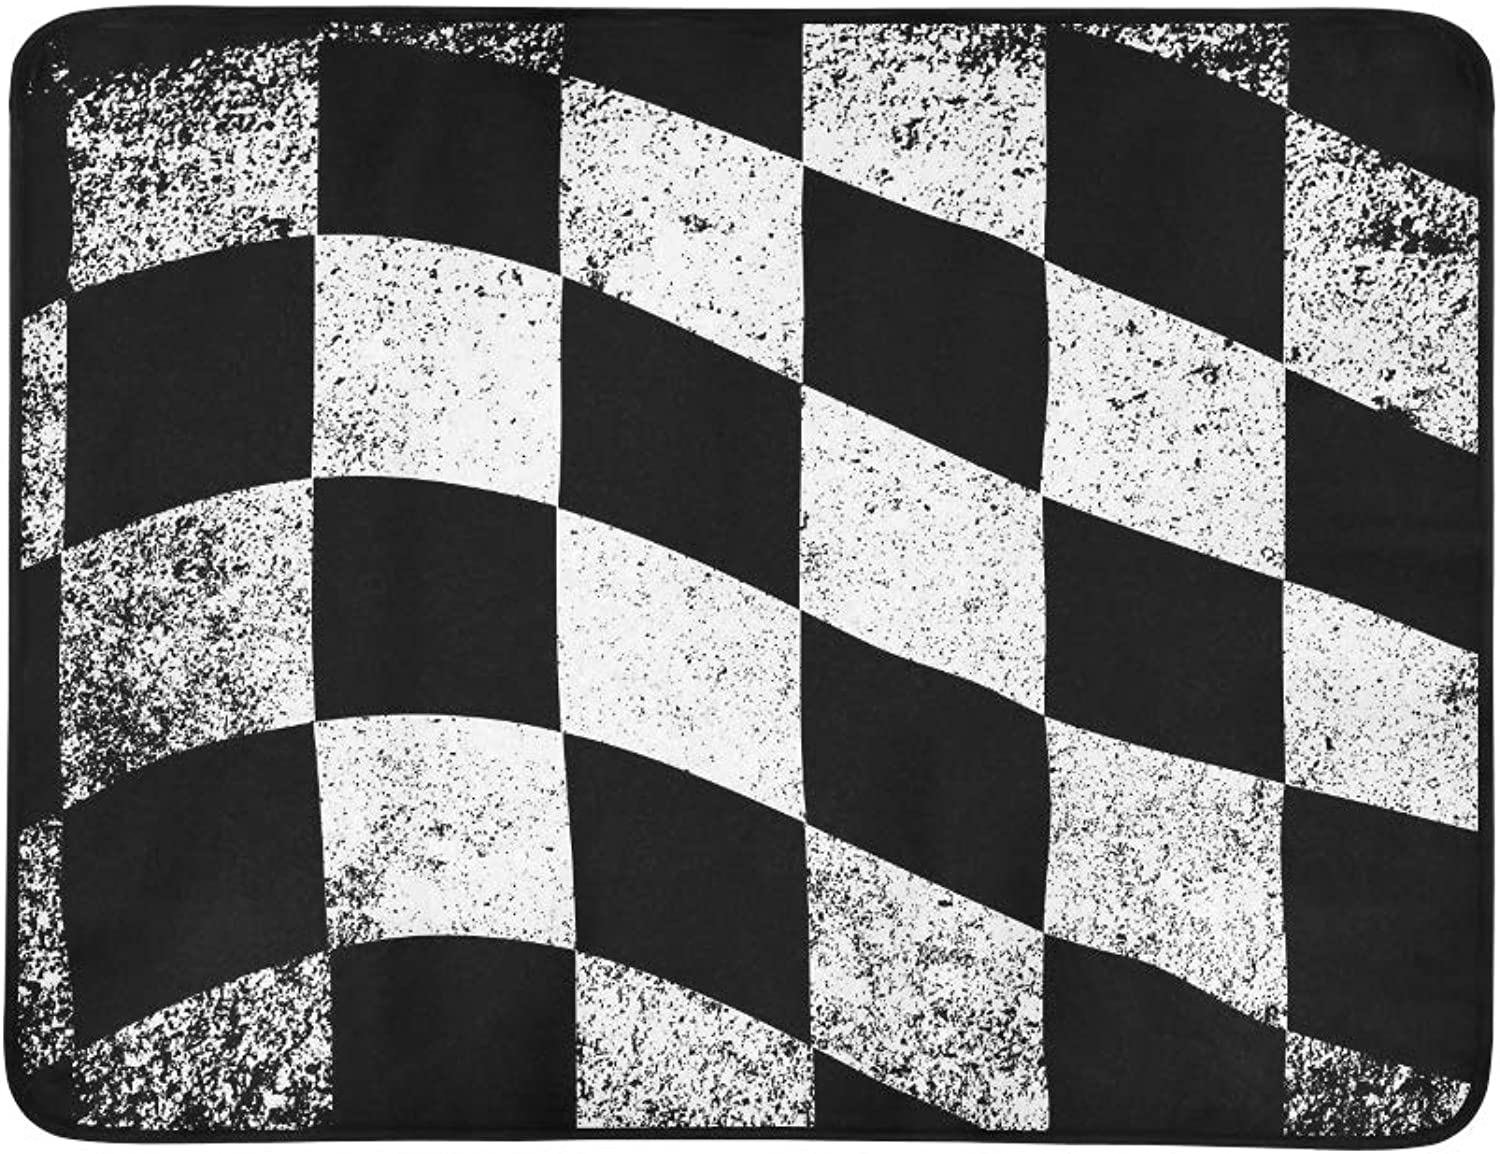 Dirty Chequered Flag Black White Checked Pattern Pattern Portable and Foldable Blanket Mat 60x78 Inch Handy Mat for Camping Picnic Beach Indoor Outdoor Travel